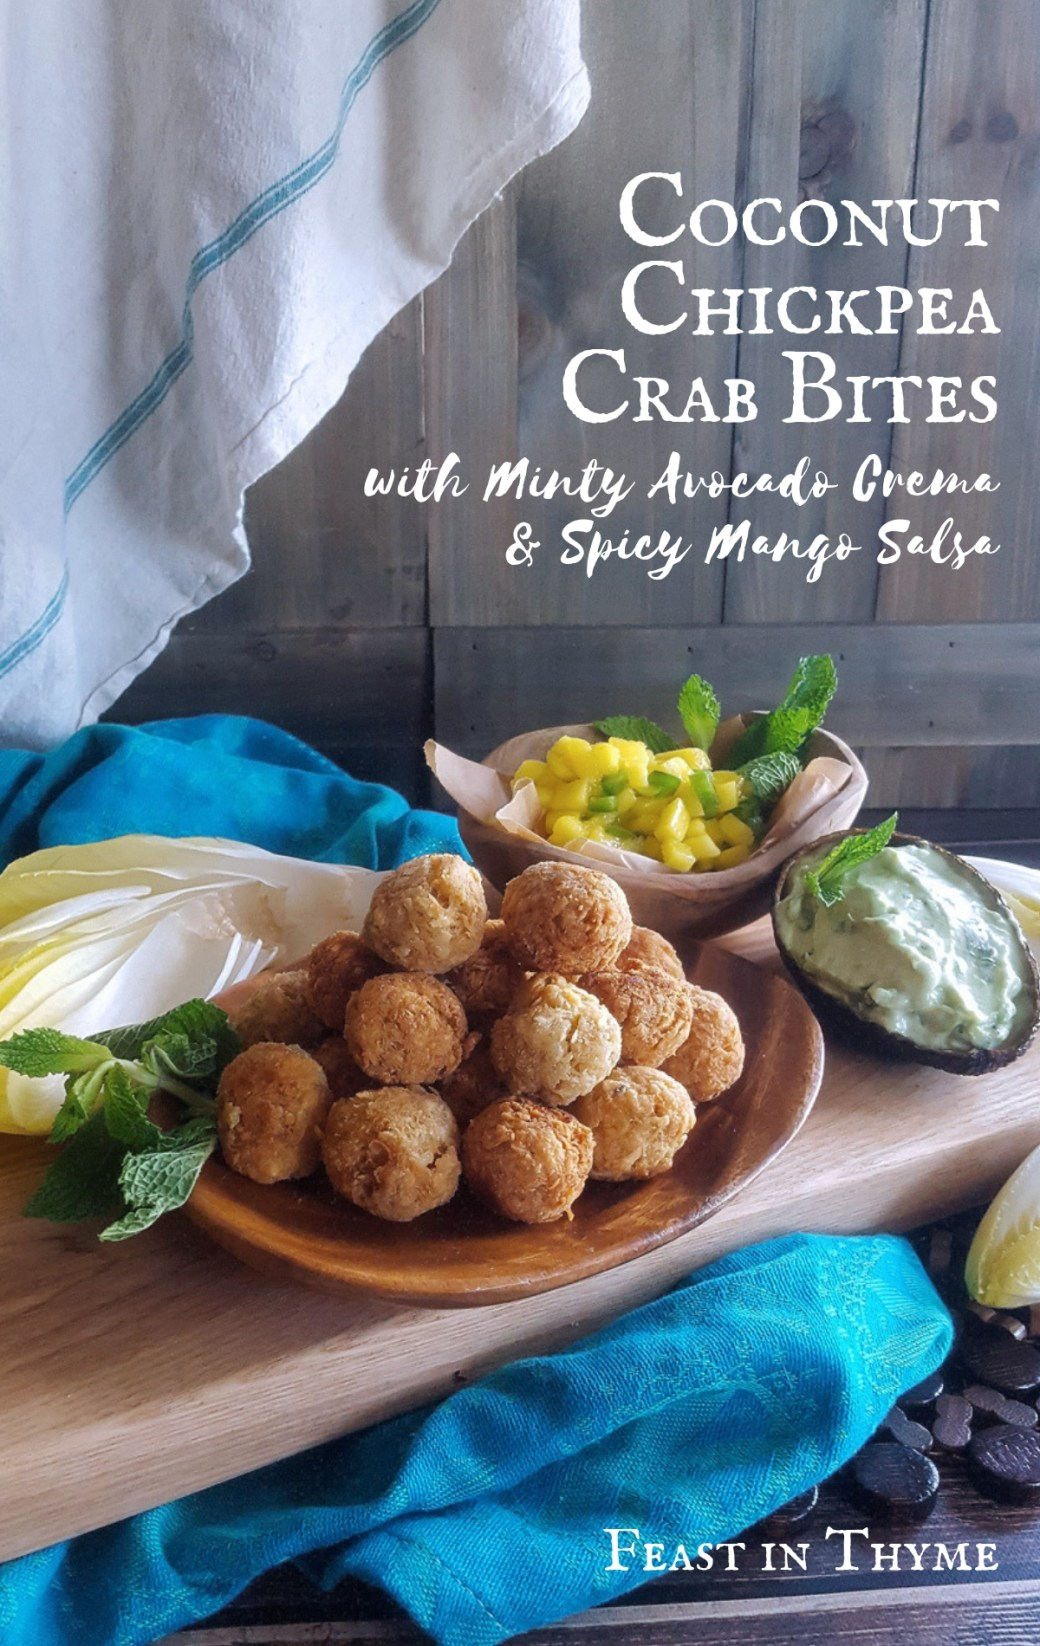 Pan fried, topped with Minty Avocado Crema & Spicy Mango Salsa, and served in an endive leaf, Coconut Chickpea Crab Bites are a delicious, gluten free twist on traditional street foods. #glutenfree #crab #streetfood #lettucecup | FeastInThyme.com